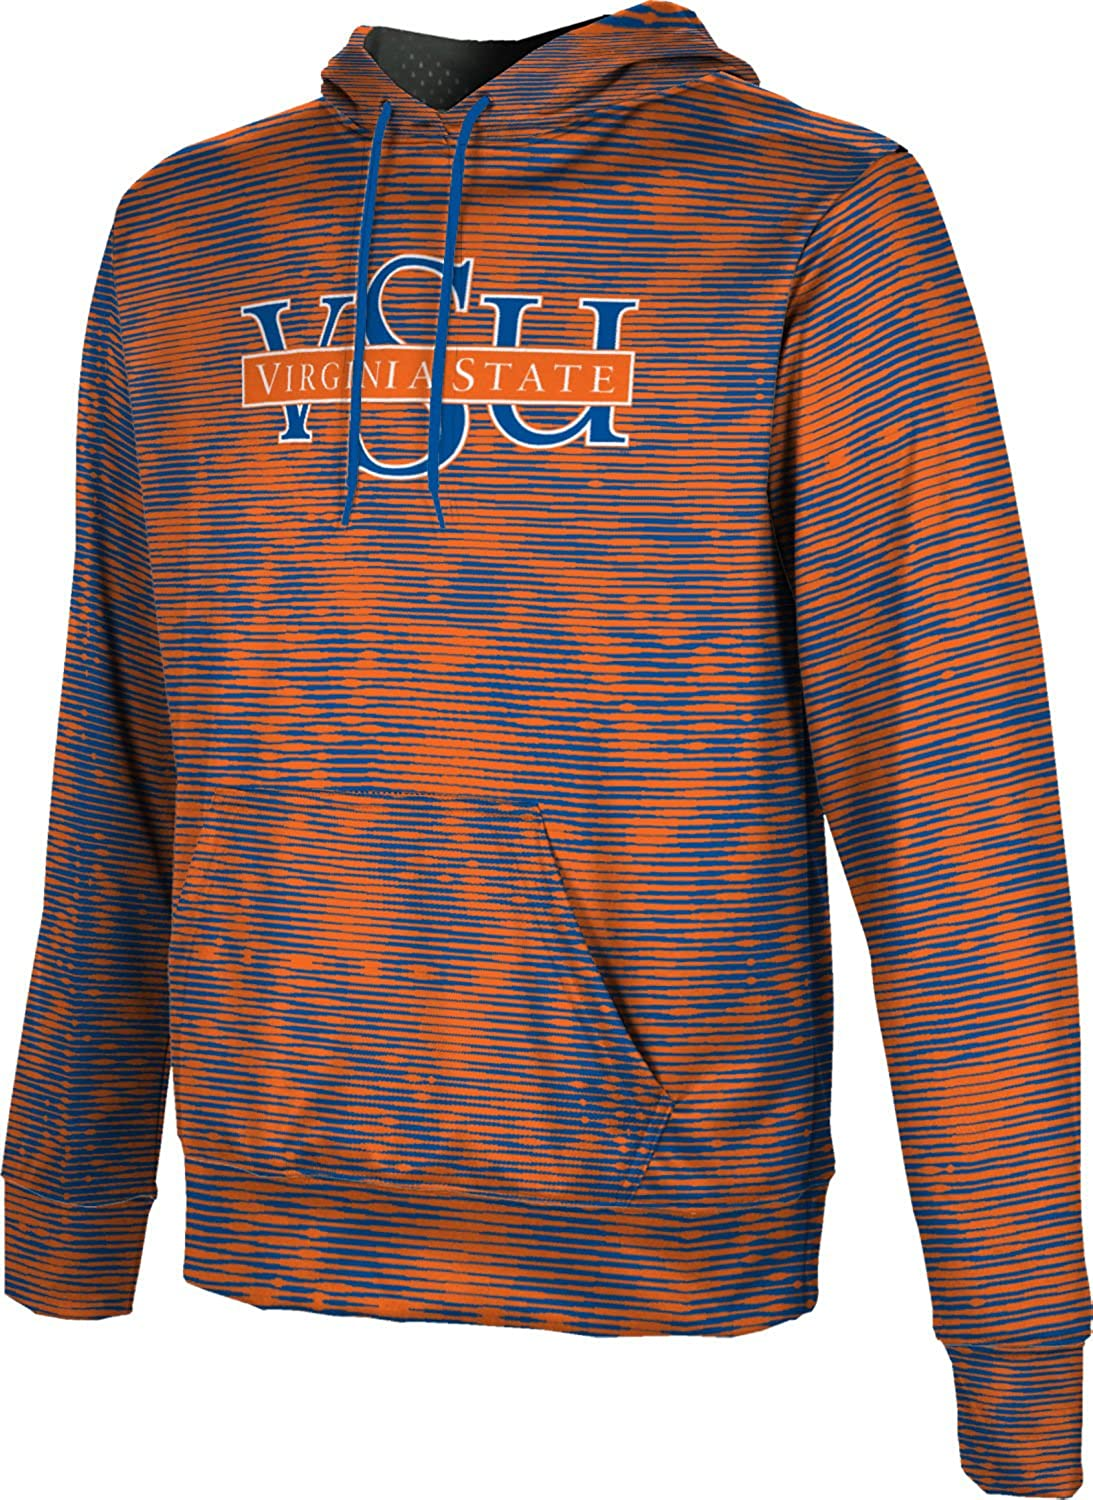 ProSphere Virginia State University Boys Hoodie Sweatshirt Velocity